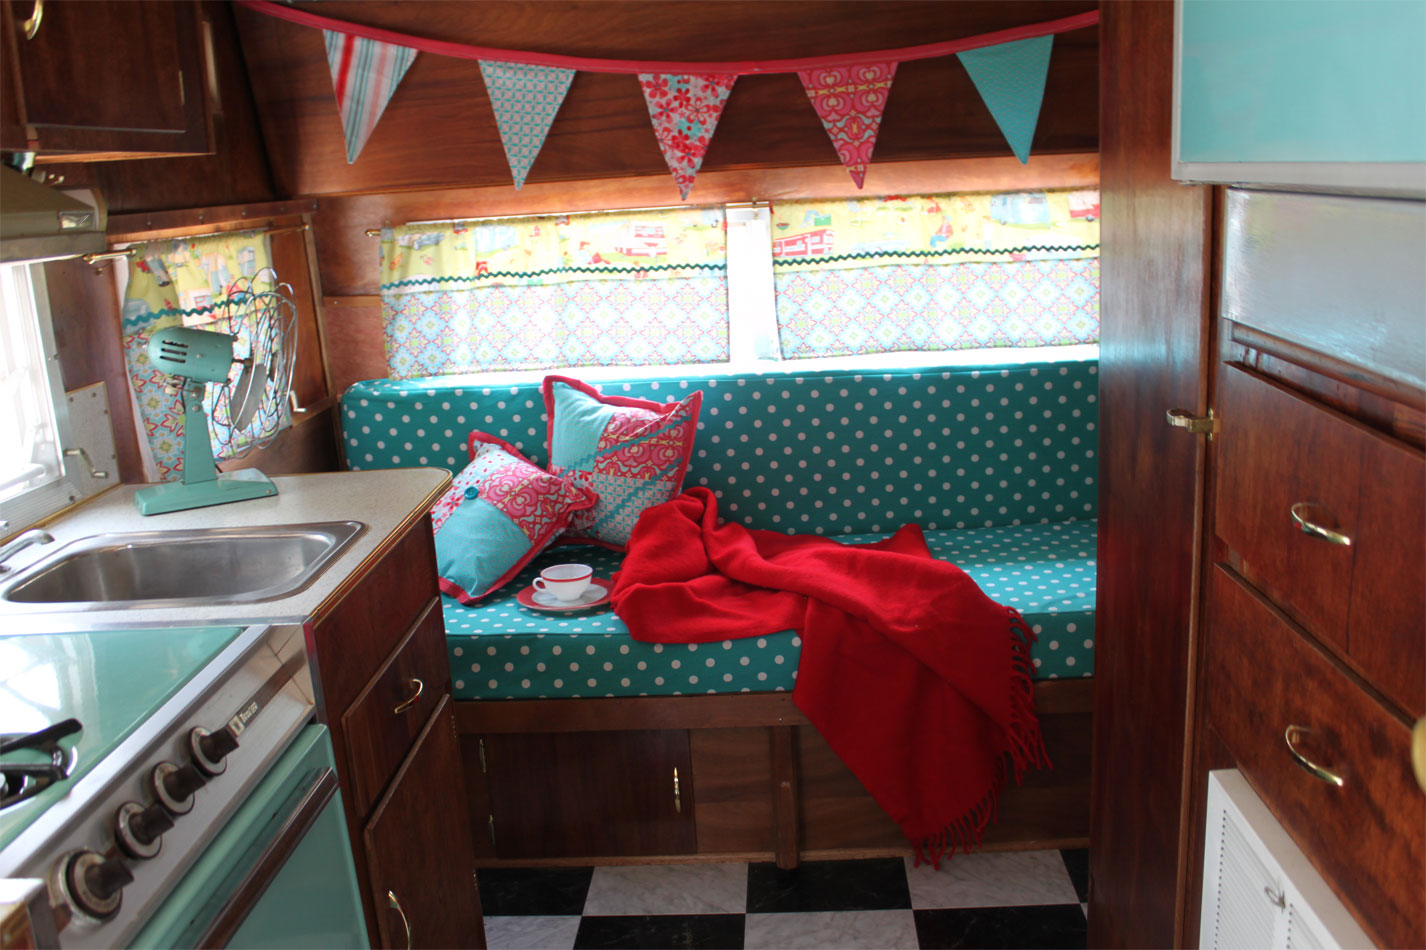 Travel Trailer Decorating Tips